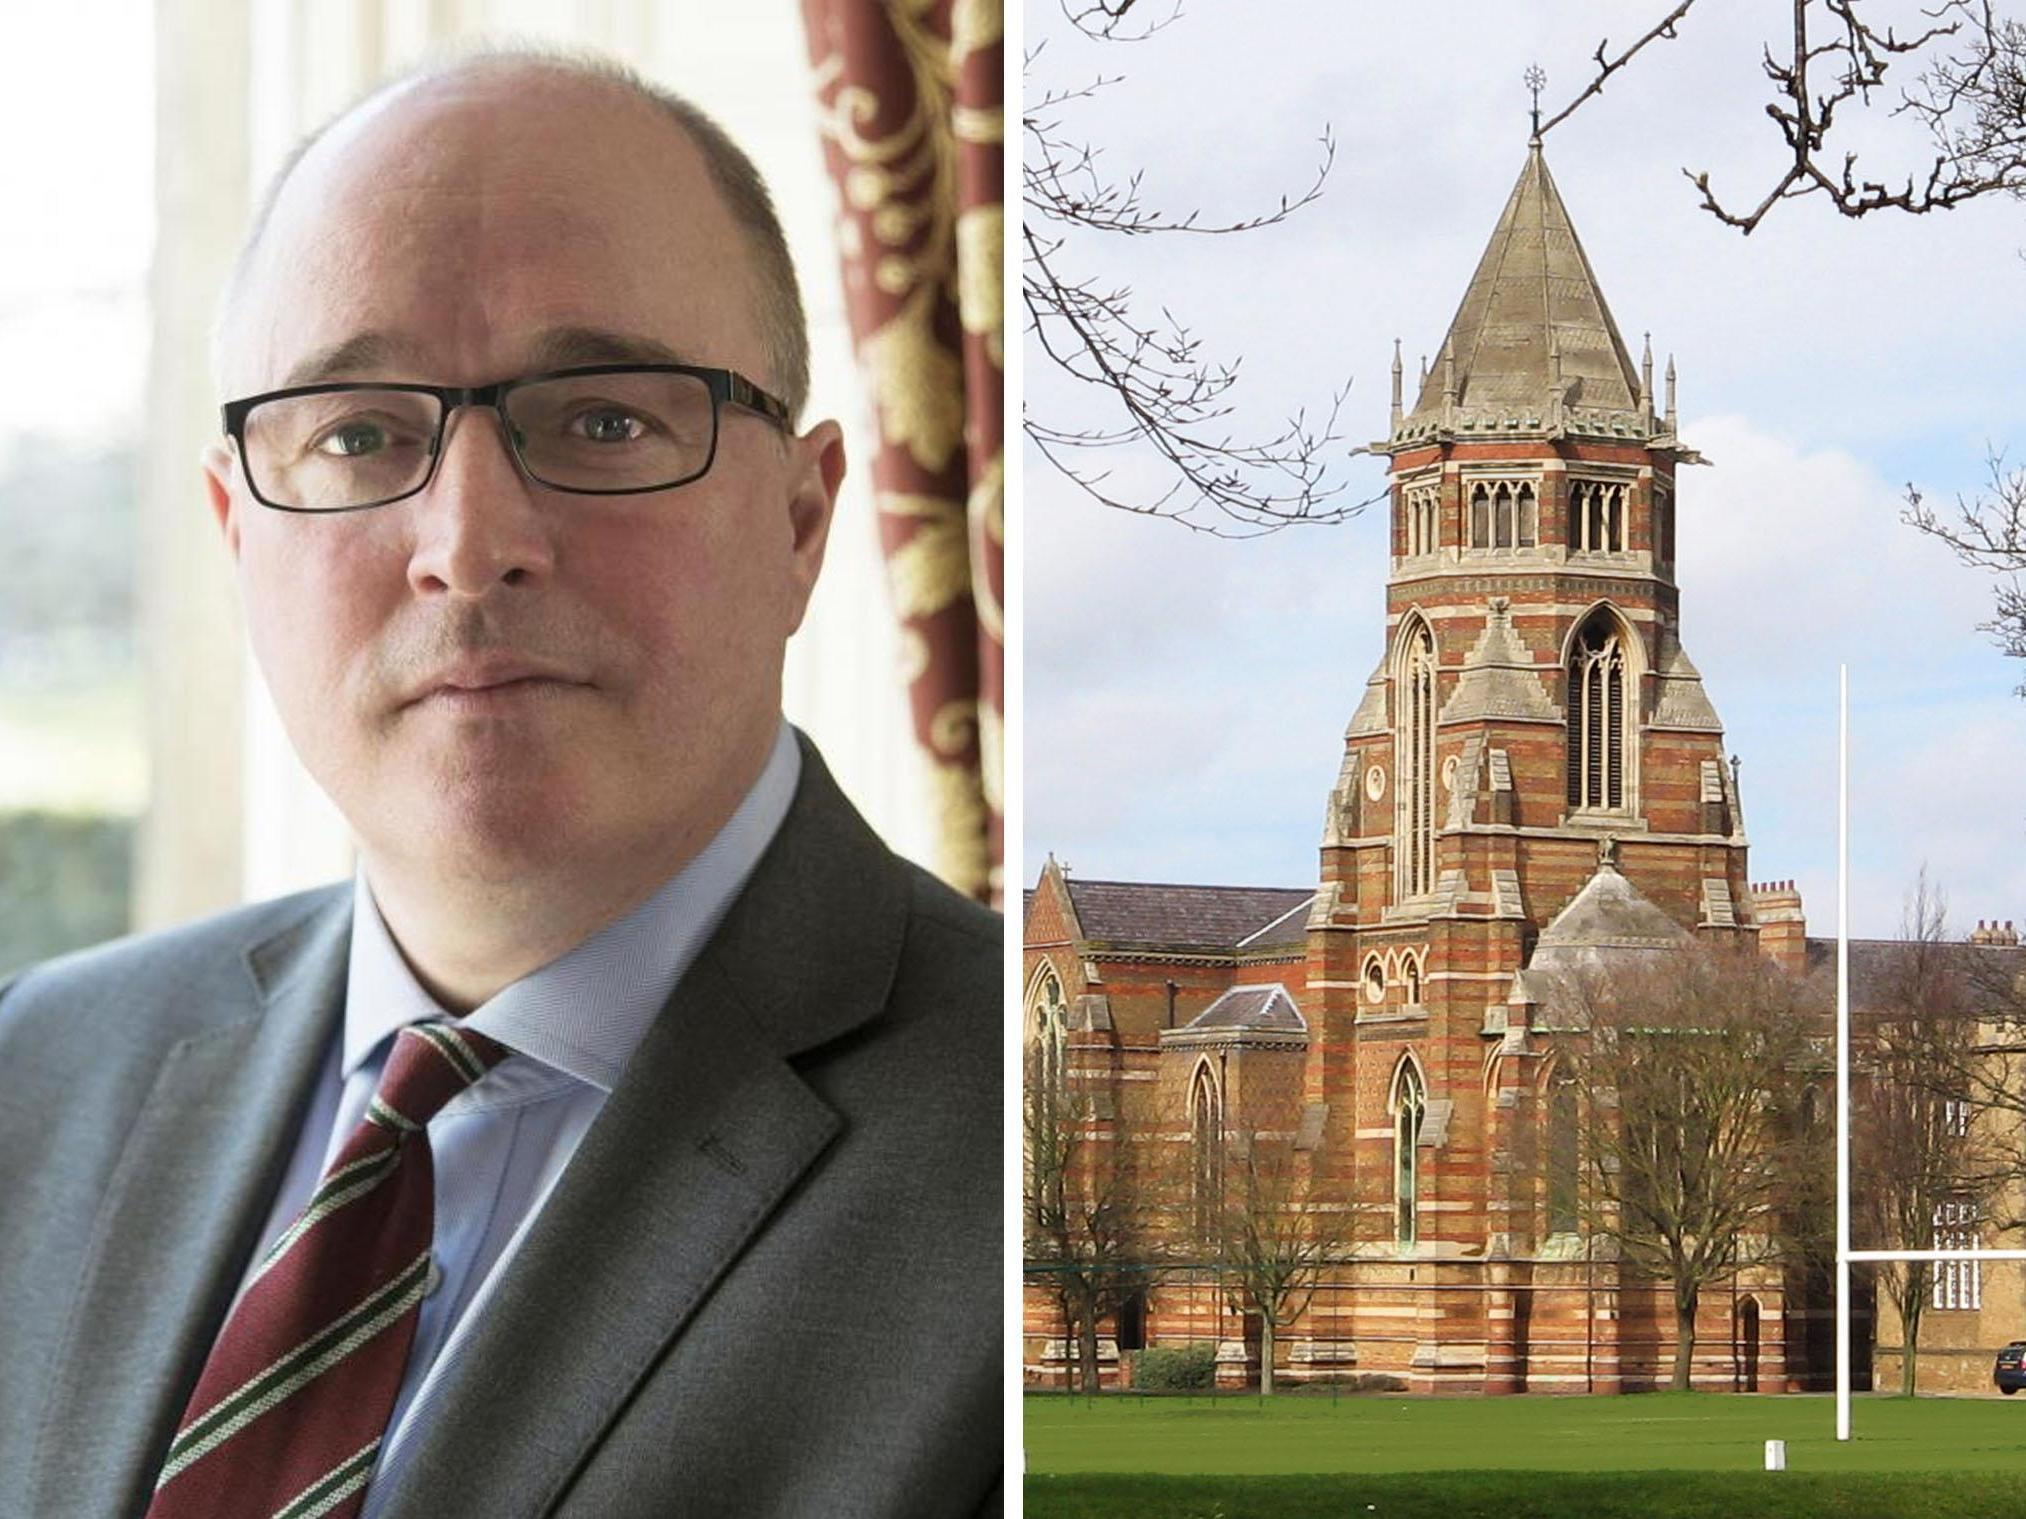 'Margaret Thatcher mining crisis' will occur if Labour abolishes private schools, head of £36,000-a-year school says